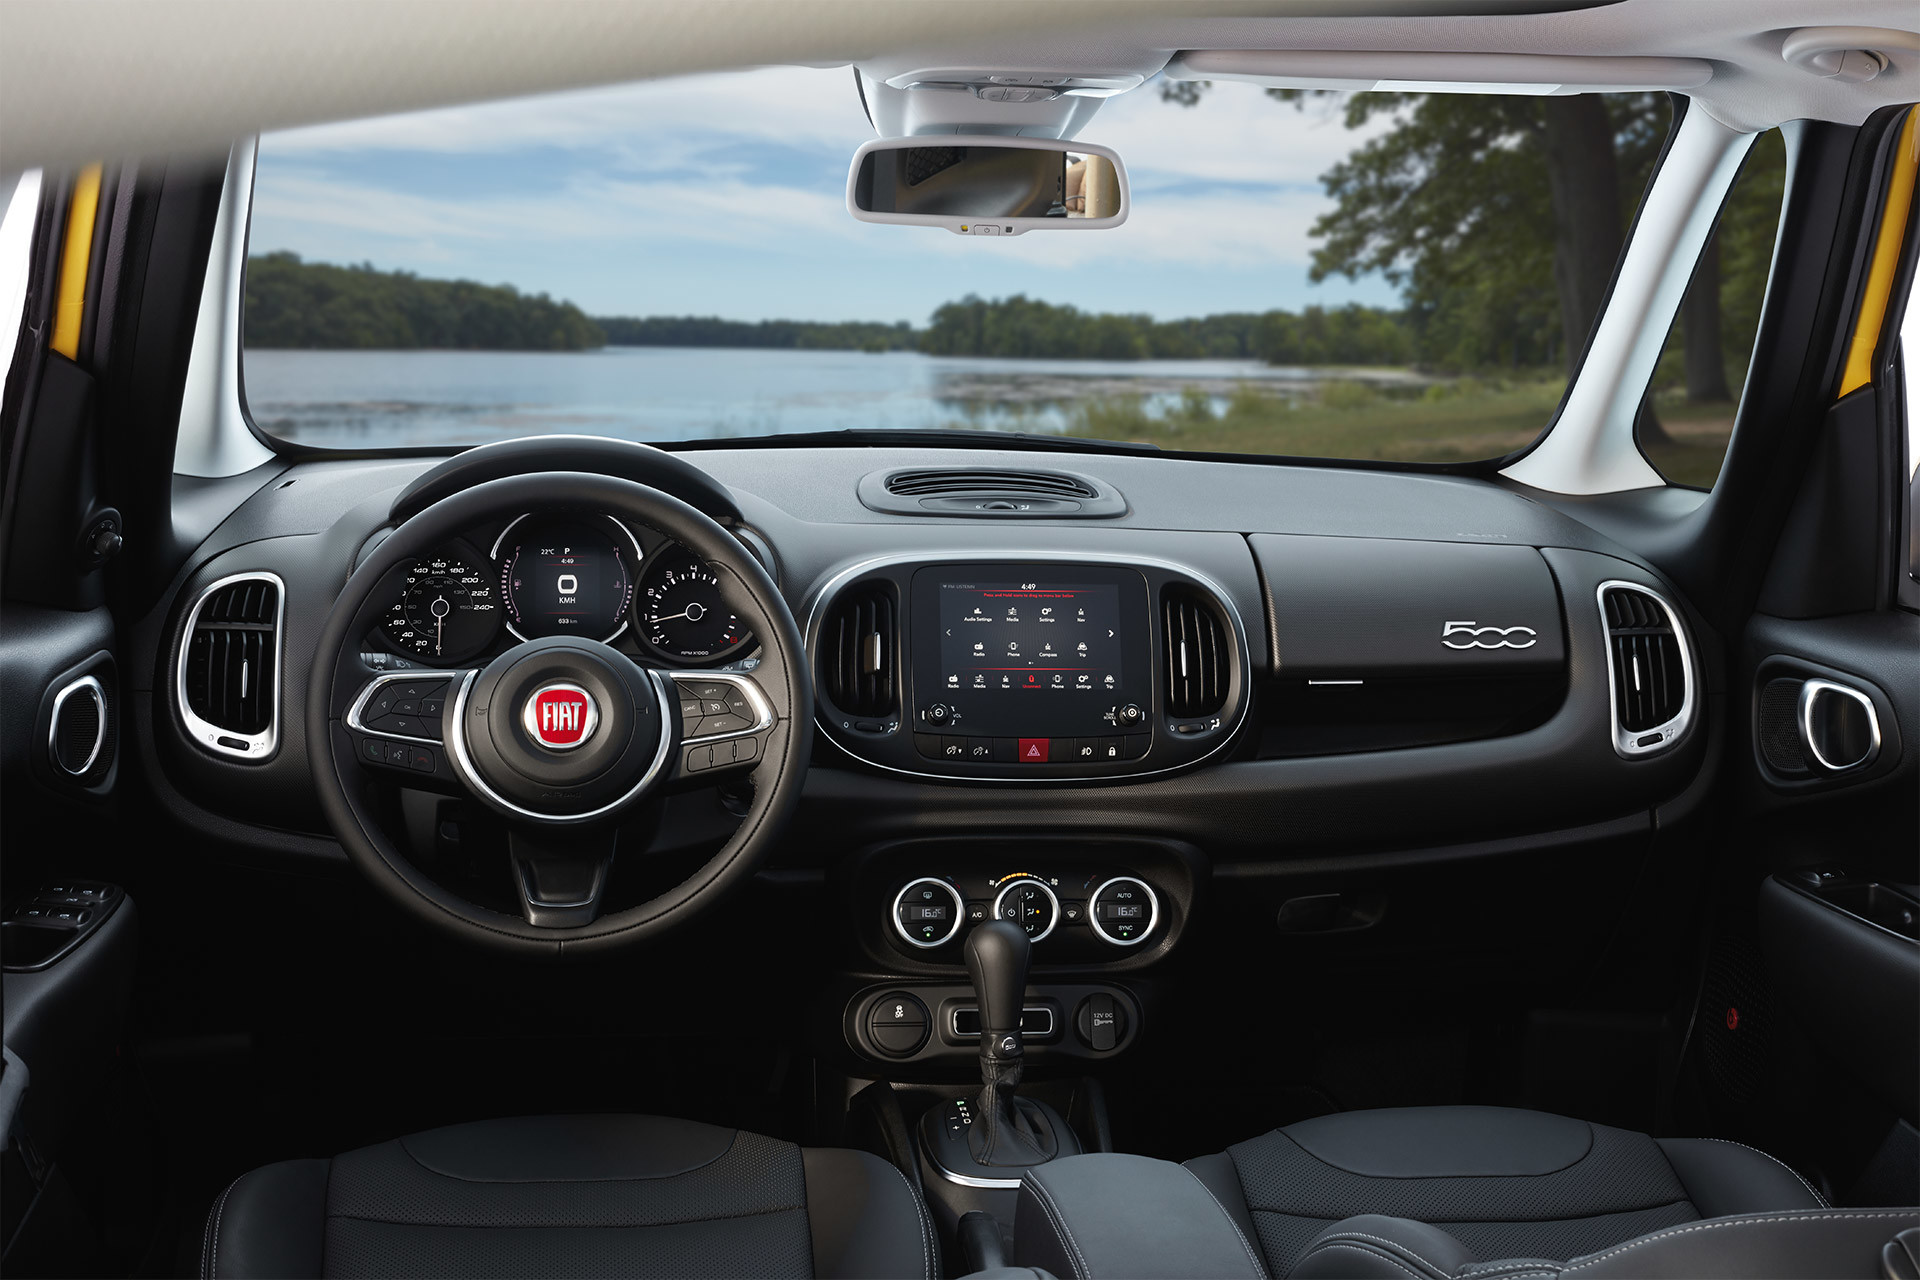 2019 Fiat 500L interior view of dashboard and Uconnect multimedia centre